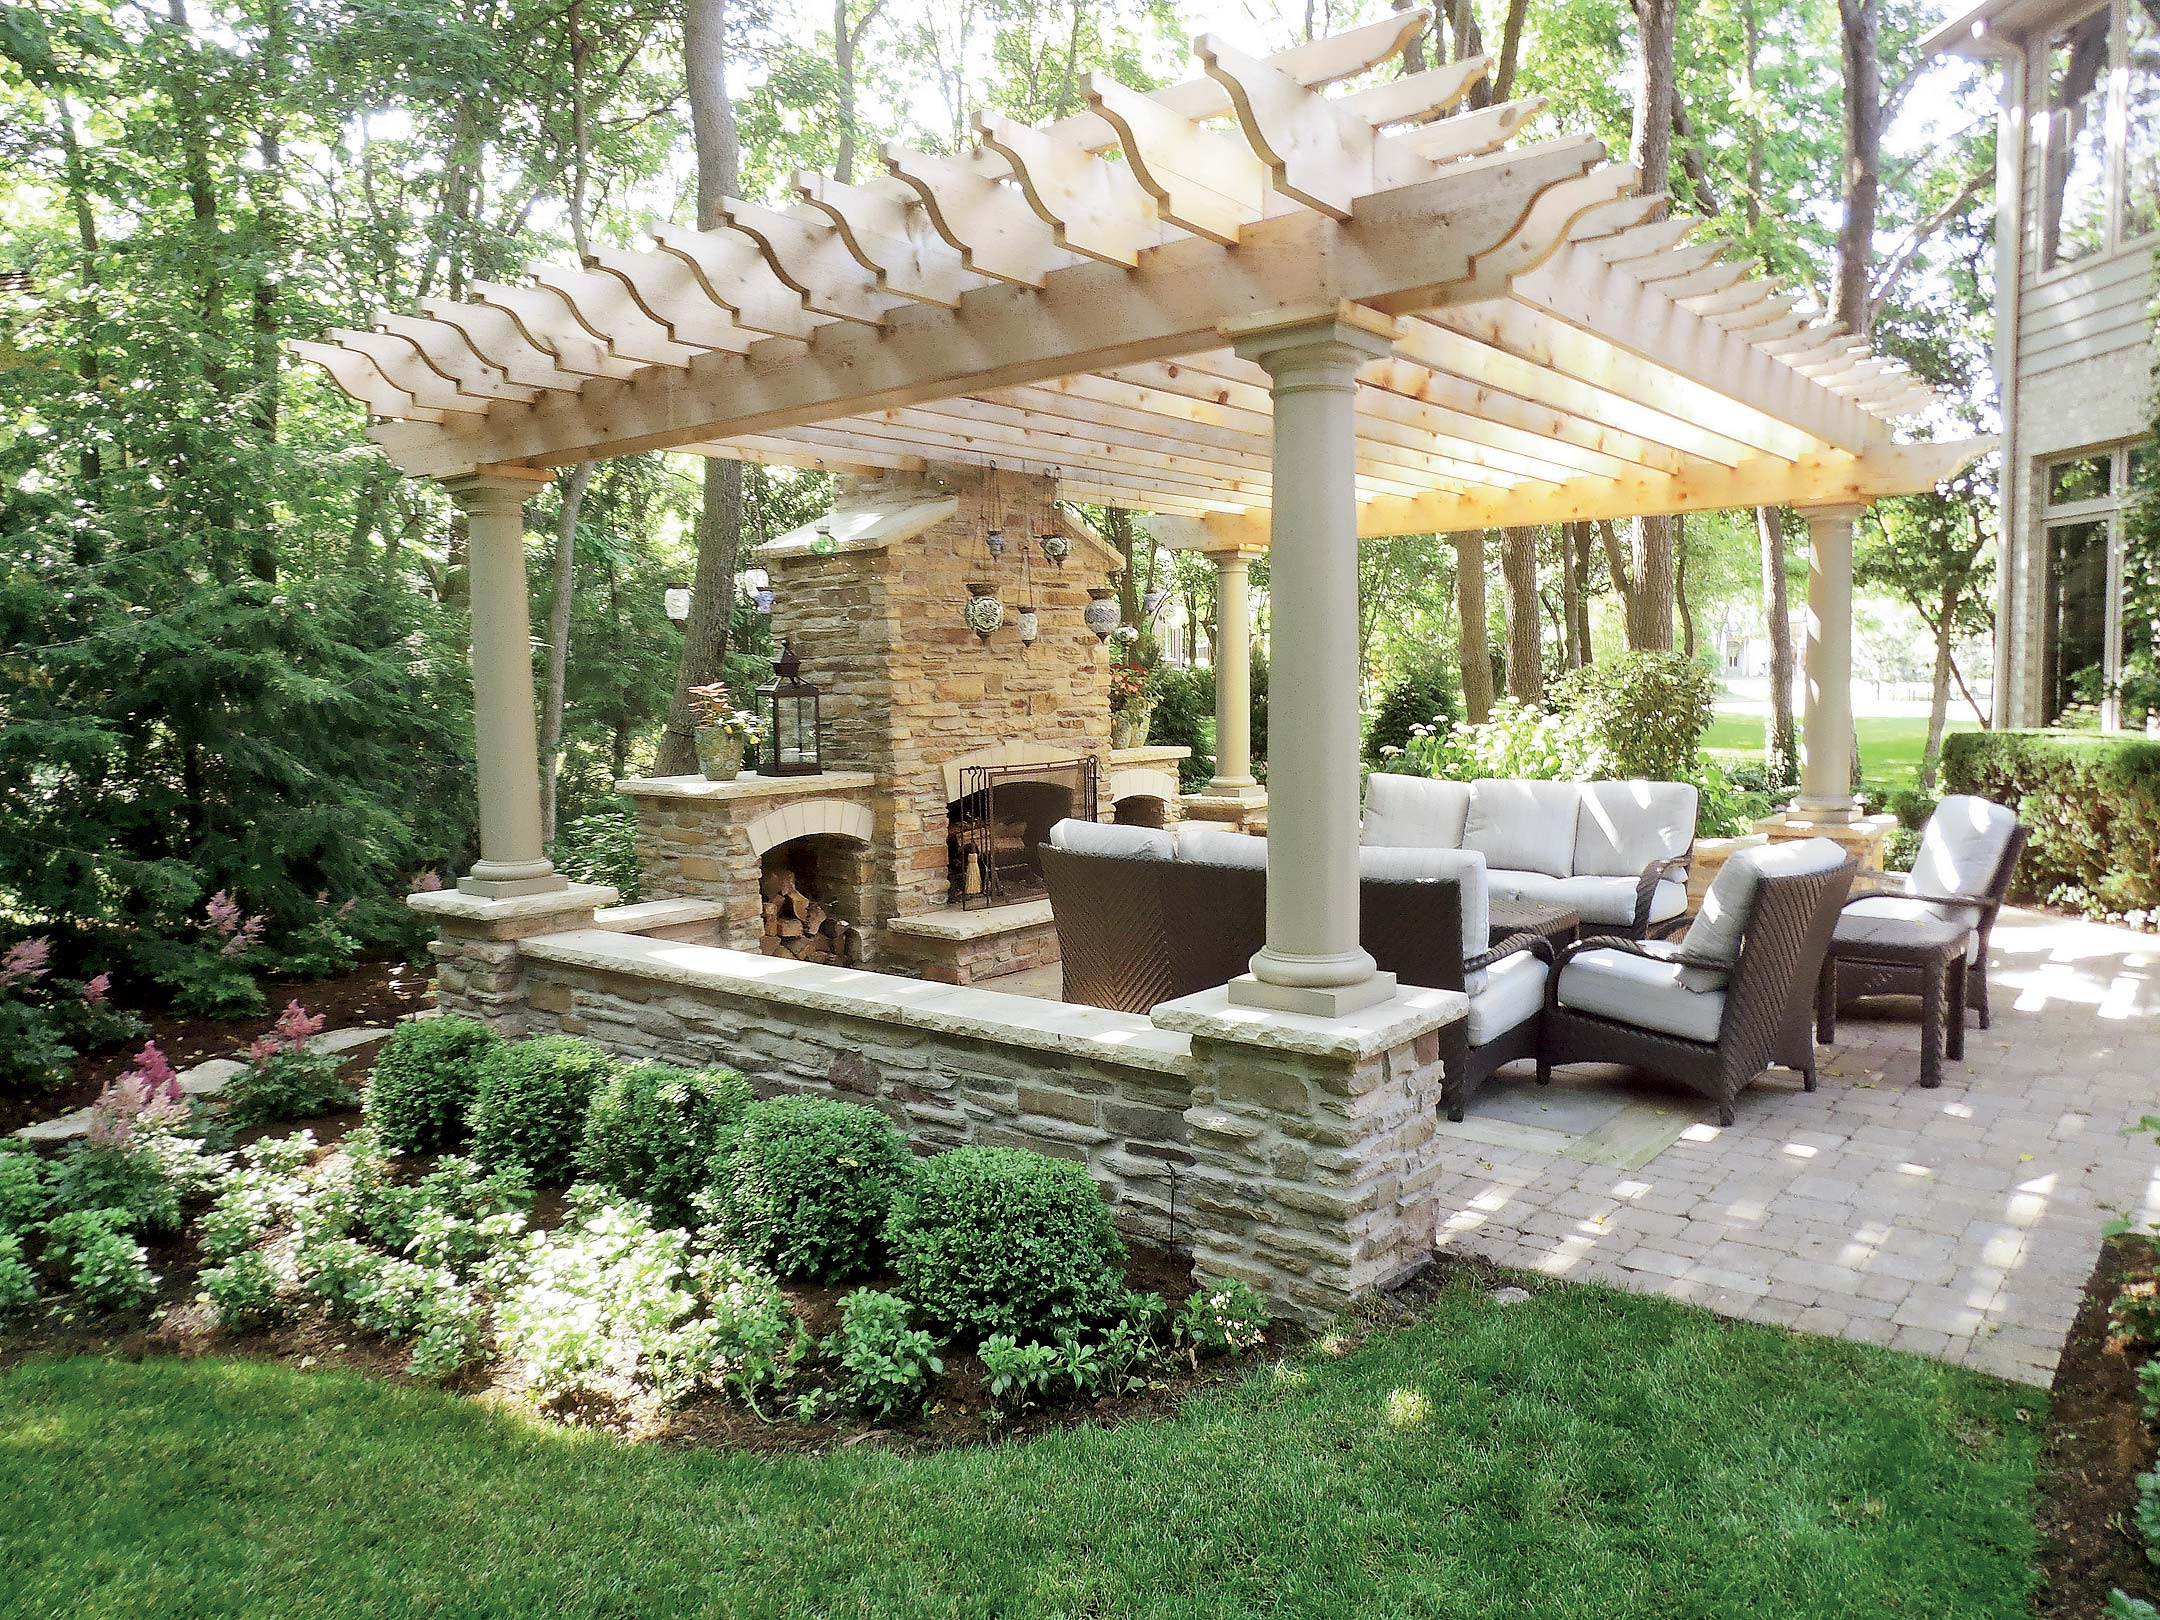 Backyard structures for entertaining for Patio decorating photos